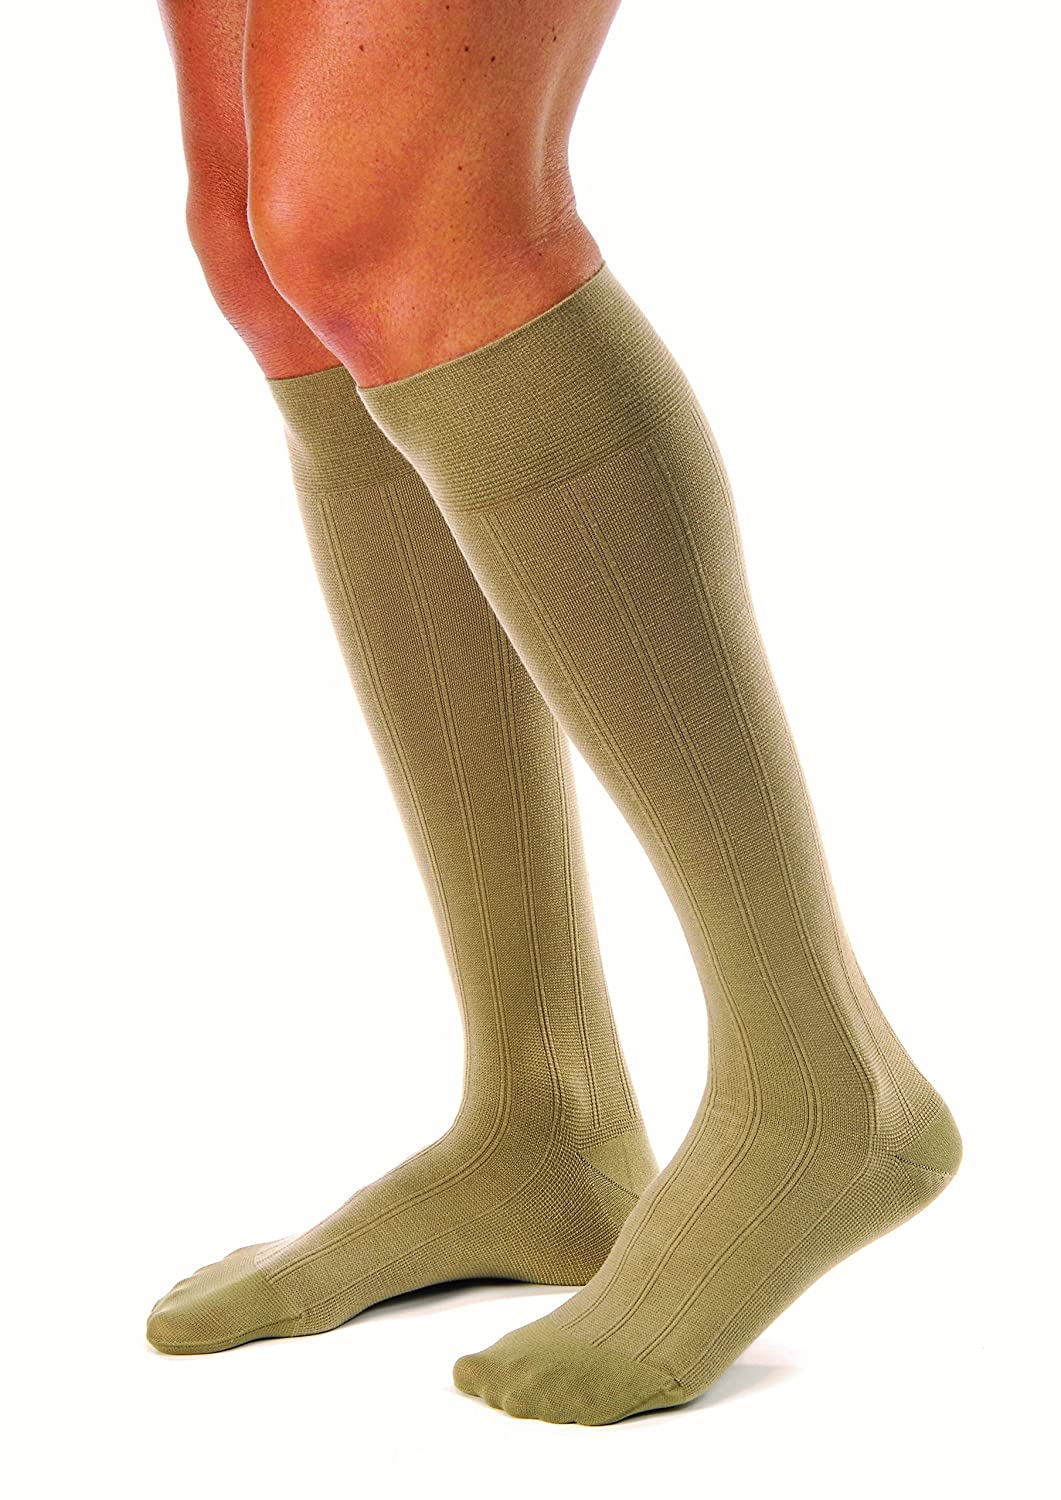 Jobst 113127 Men's 20-30 mmHg Firm Casual Knee High Support Sock Size: X-Large, Color: Khaki by Jobst B003AKOJRW